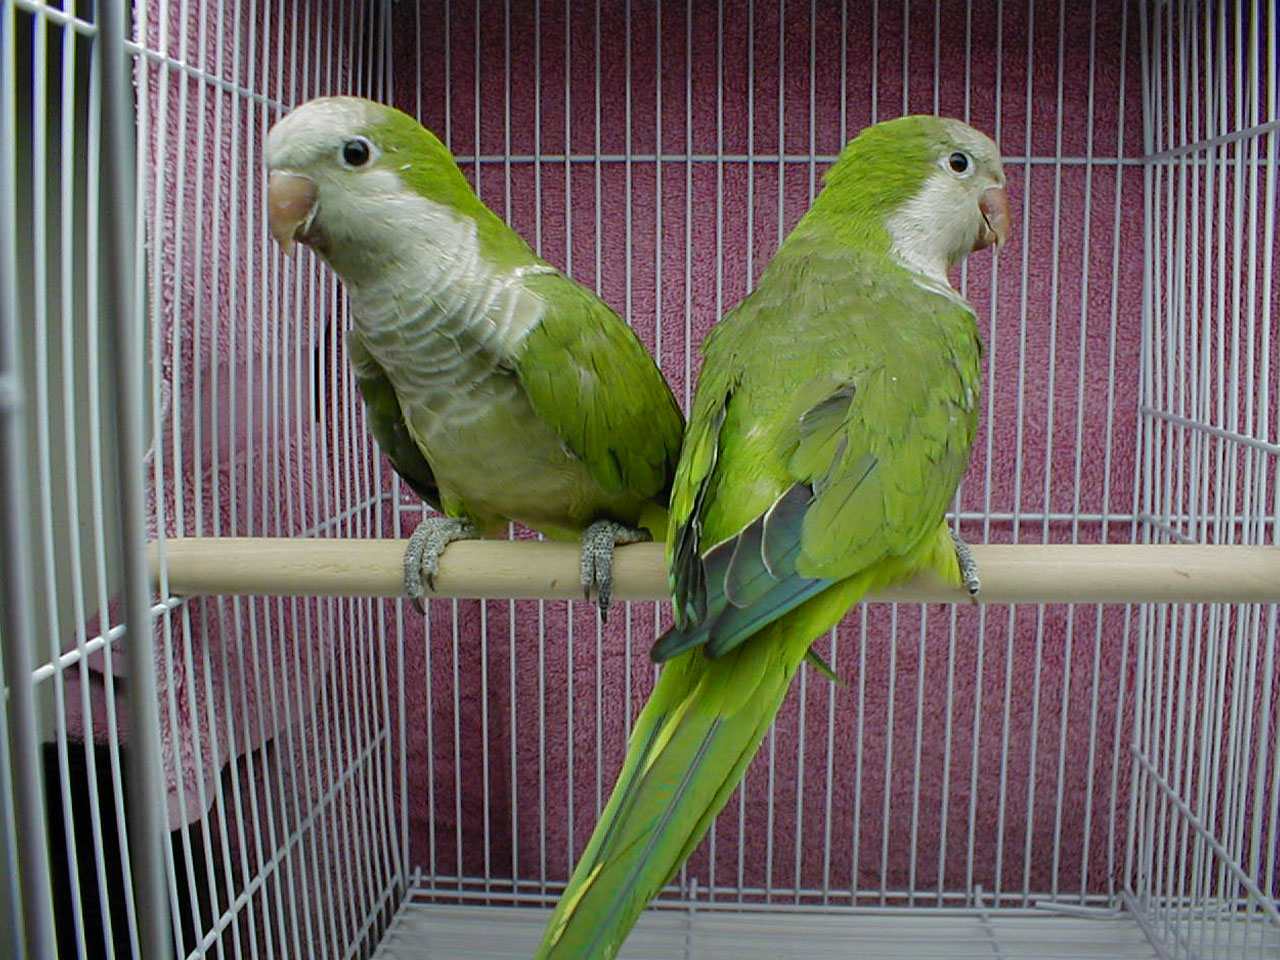 Indian Green Parrot http://afunnyanimal.blogspot.com/2011/08/green-parrot-bird.html